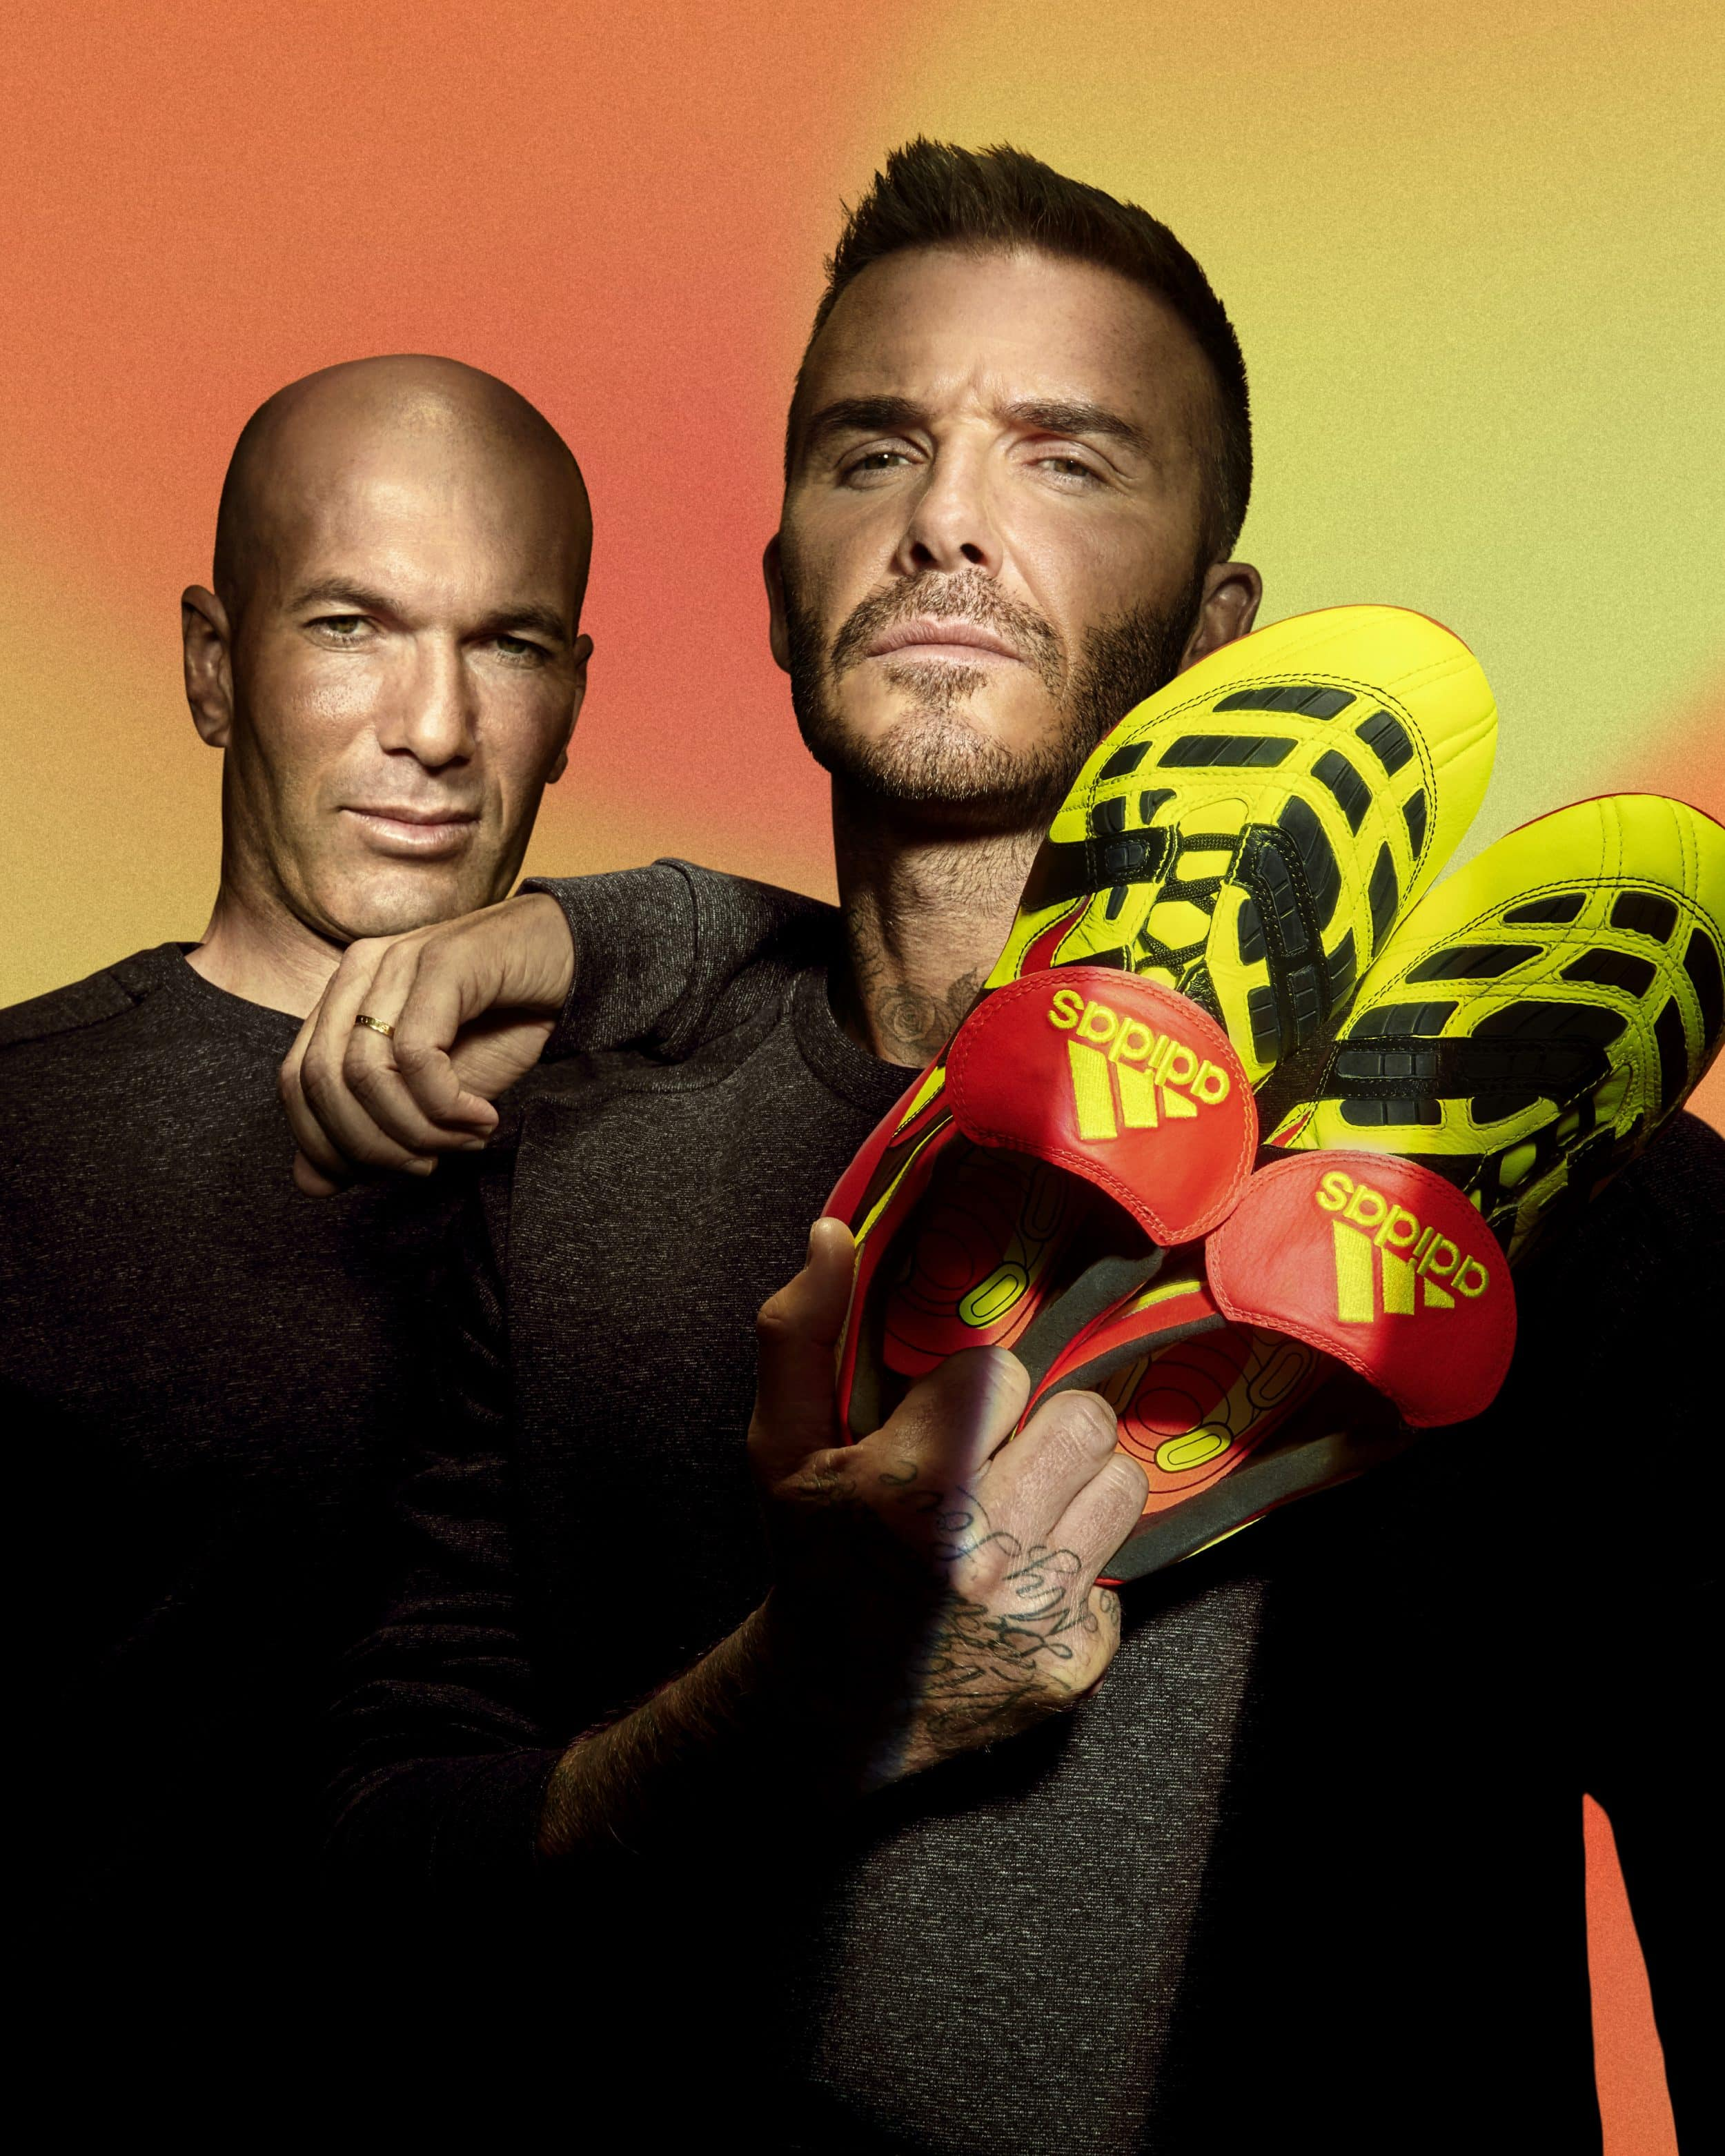 Chaussures-football-adidas-predator-accelerator-electricity-2018-juillet-2018-11